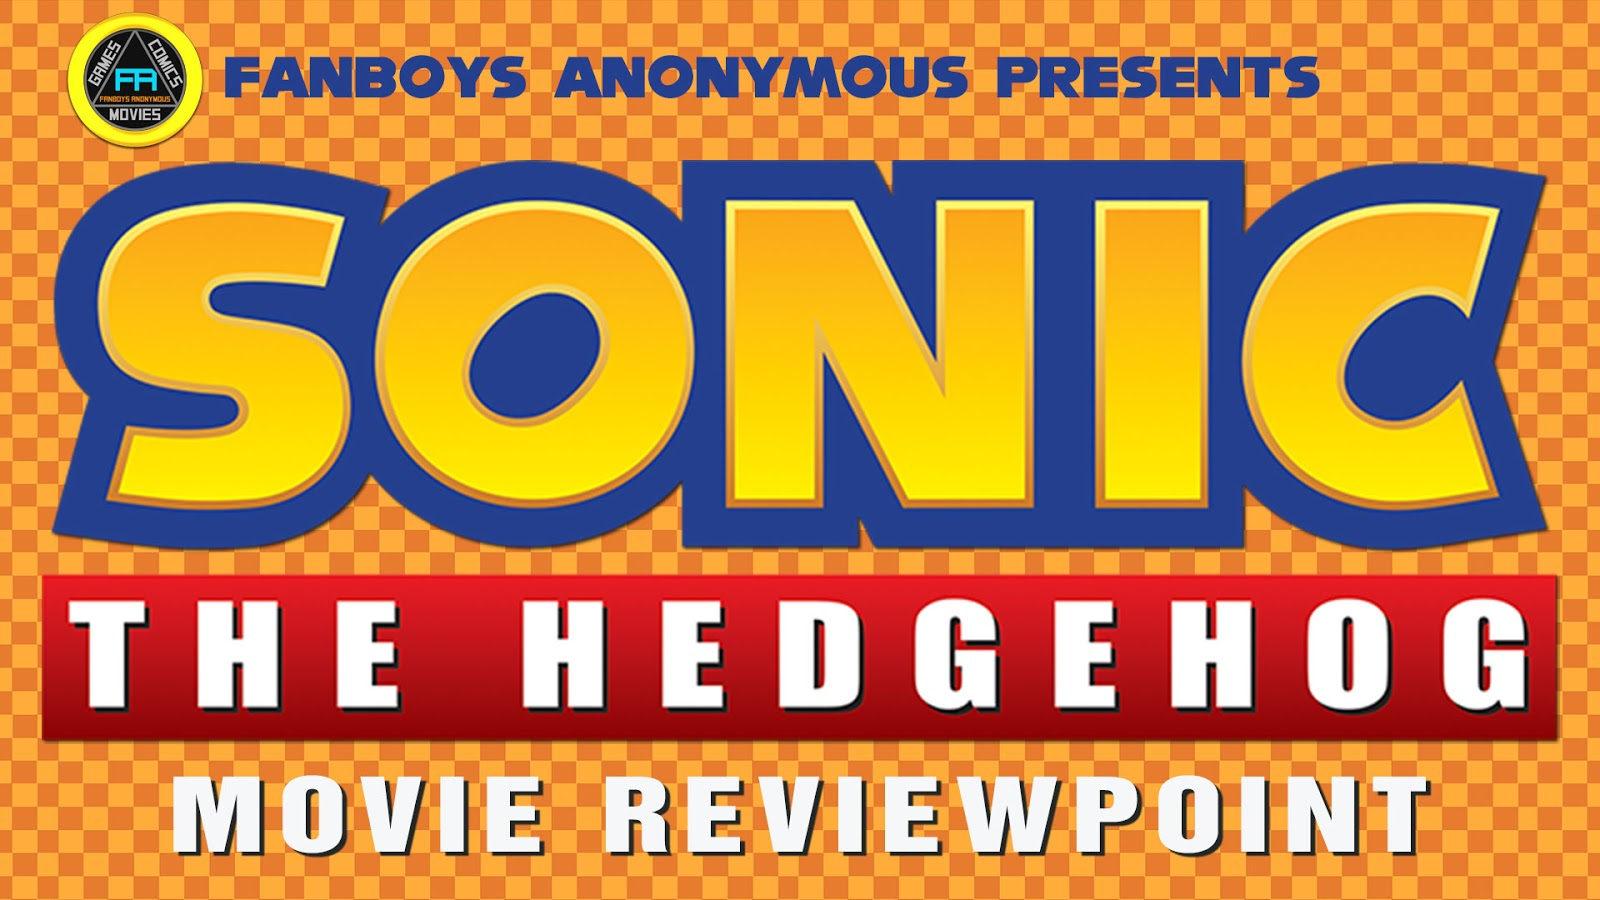 movie review Sonic the Hedgehog podcast